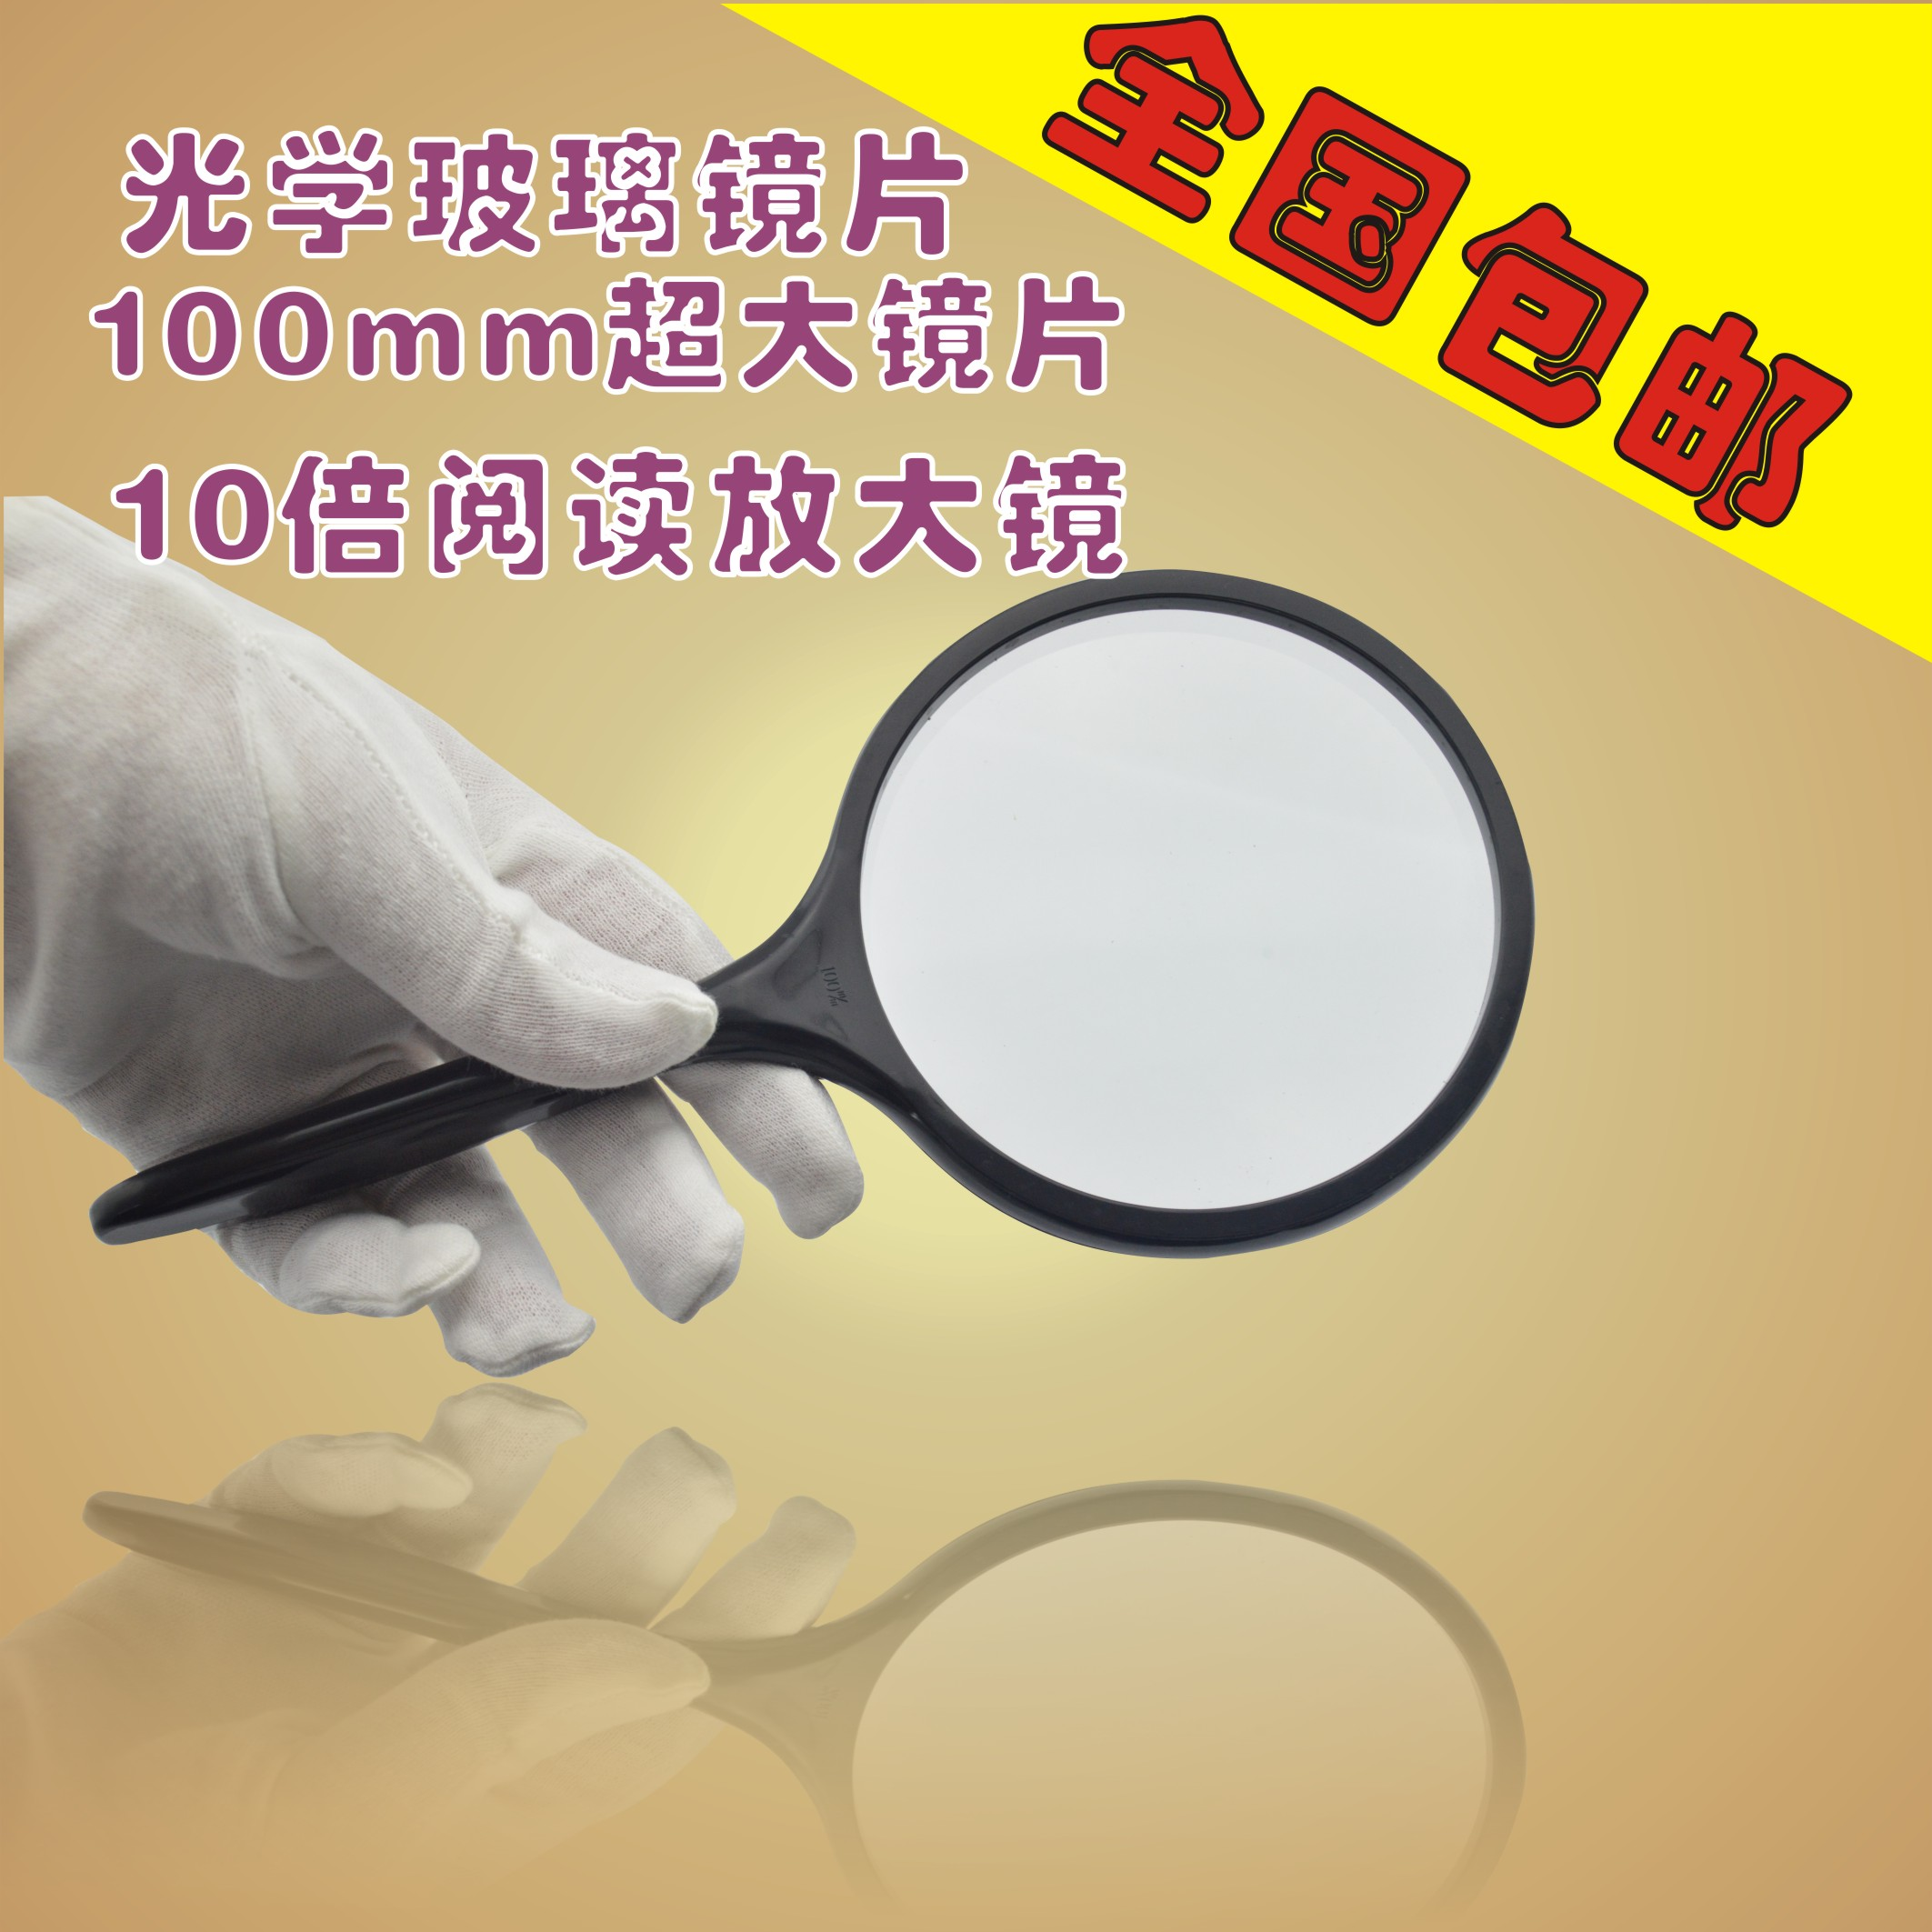 Handheld products with 10 times magnifying glass 100MM super large lenses for high age reading magnifying glasses